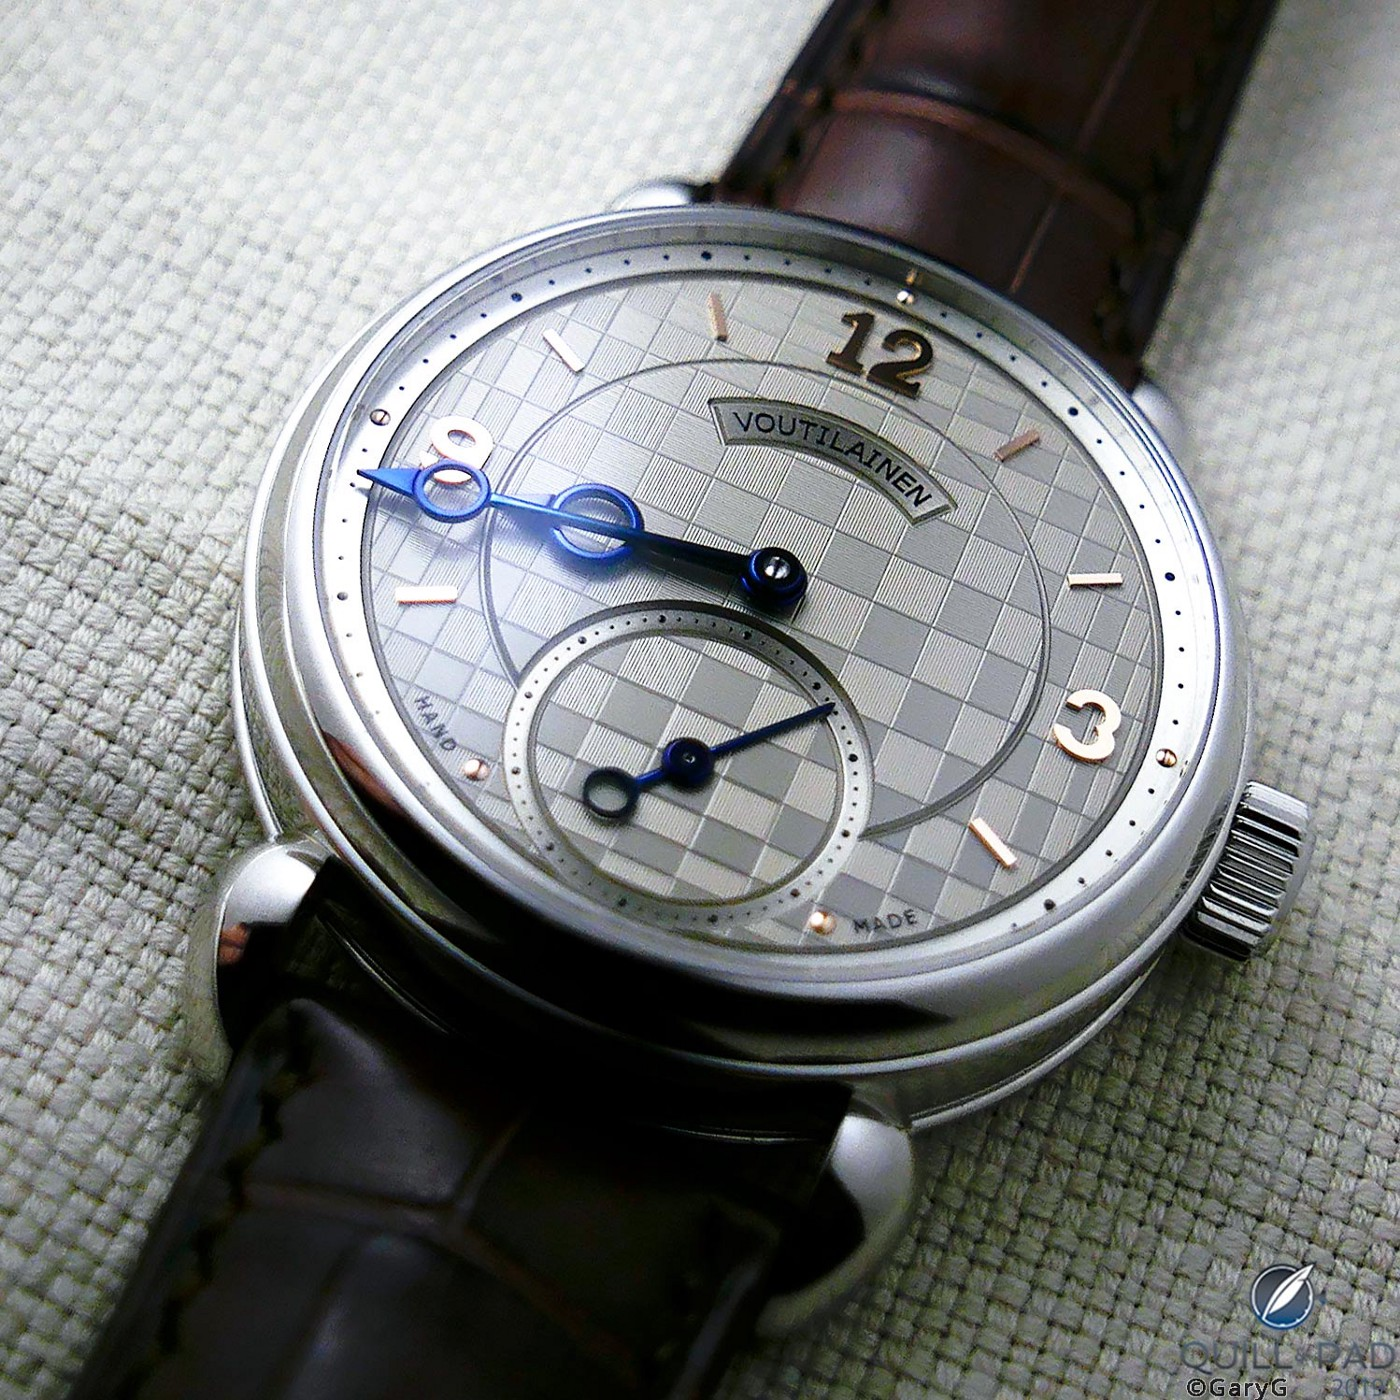 Voutilainen Vingt-8 with guilloche dial and 37.5mm case